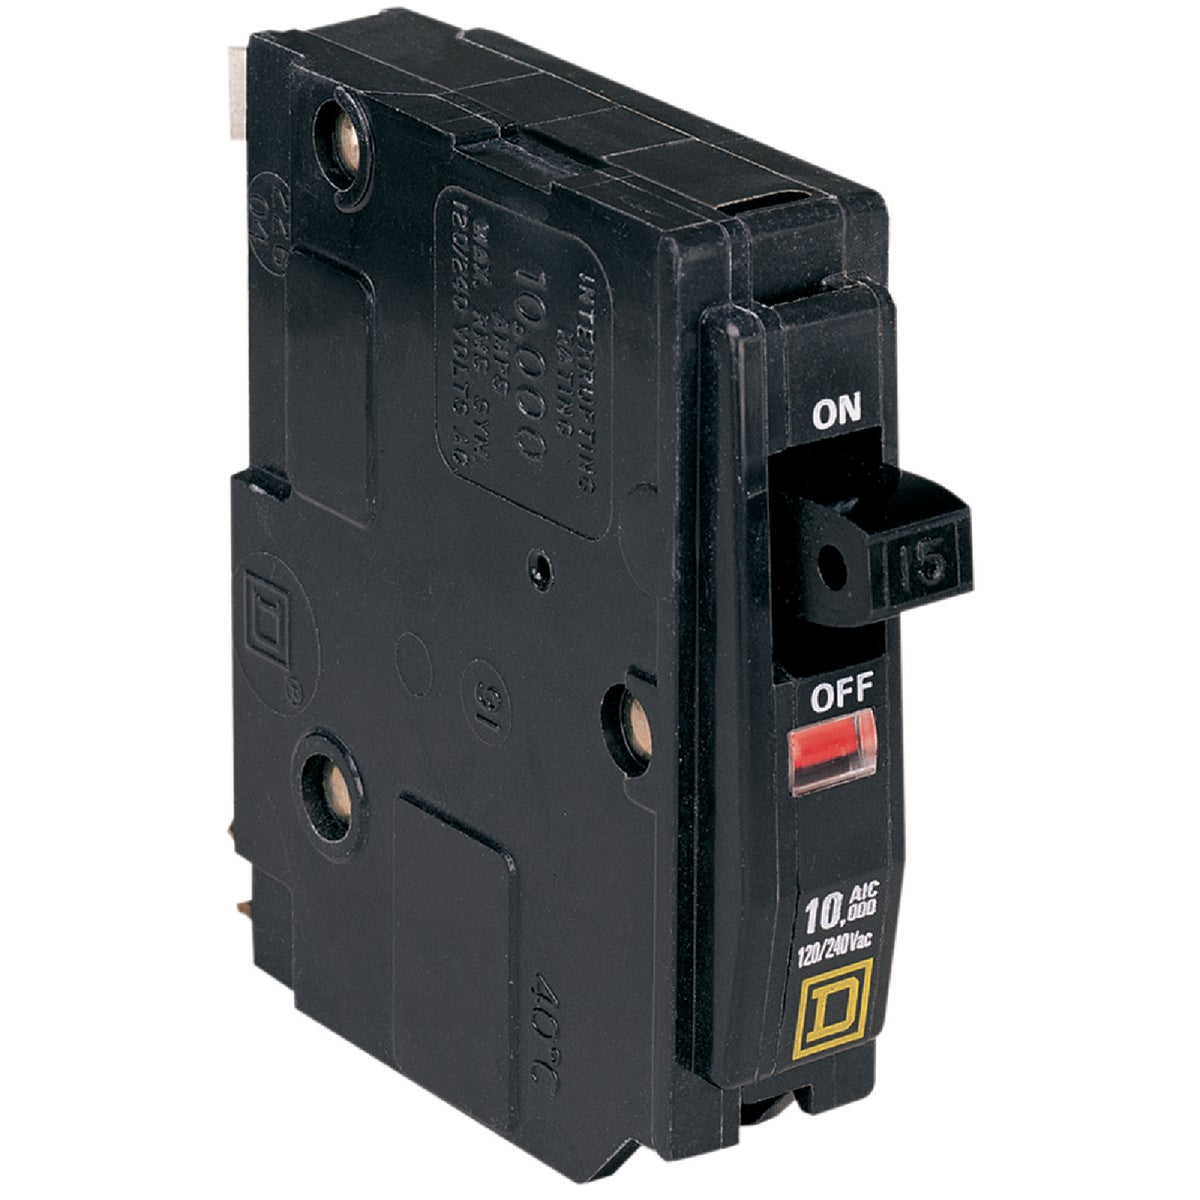 30A SP CIRCUIT BREAKER - QO130C by Square D Co